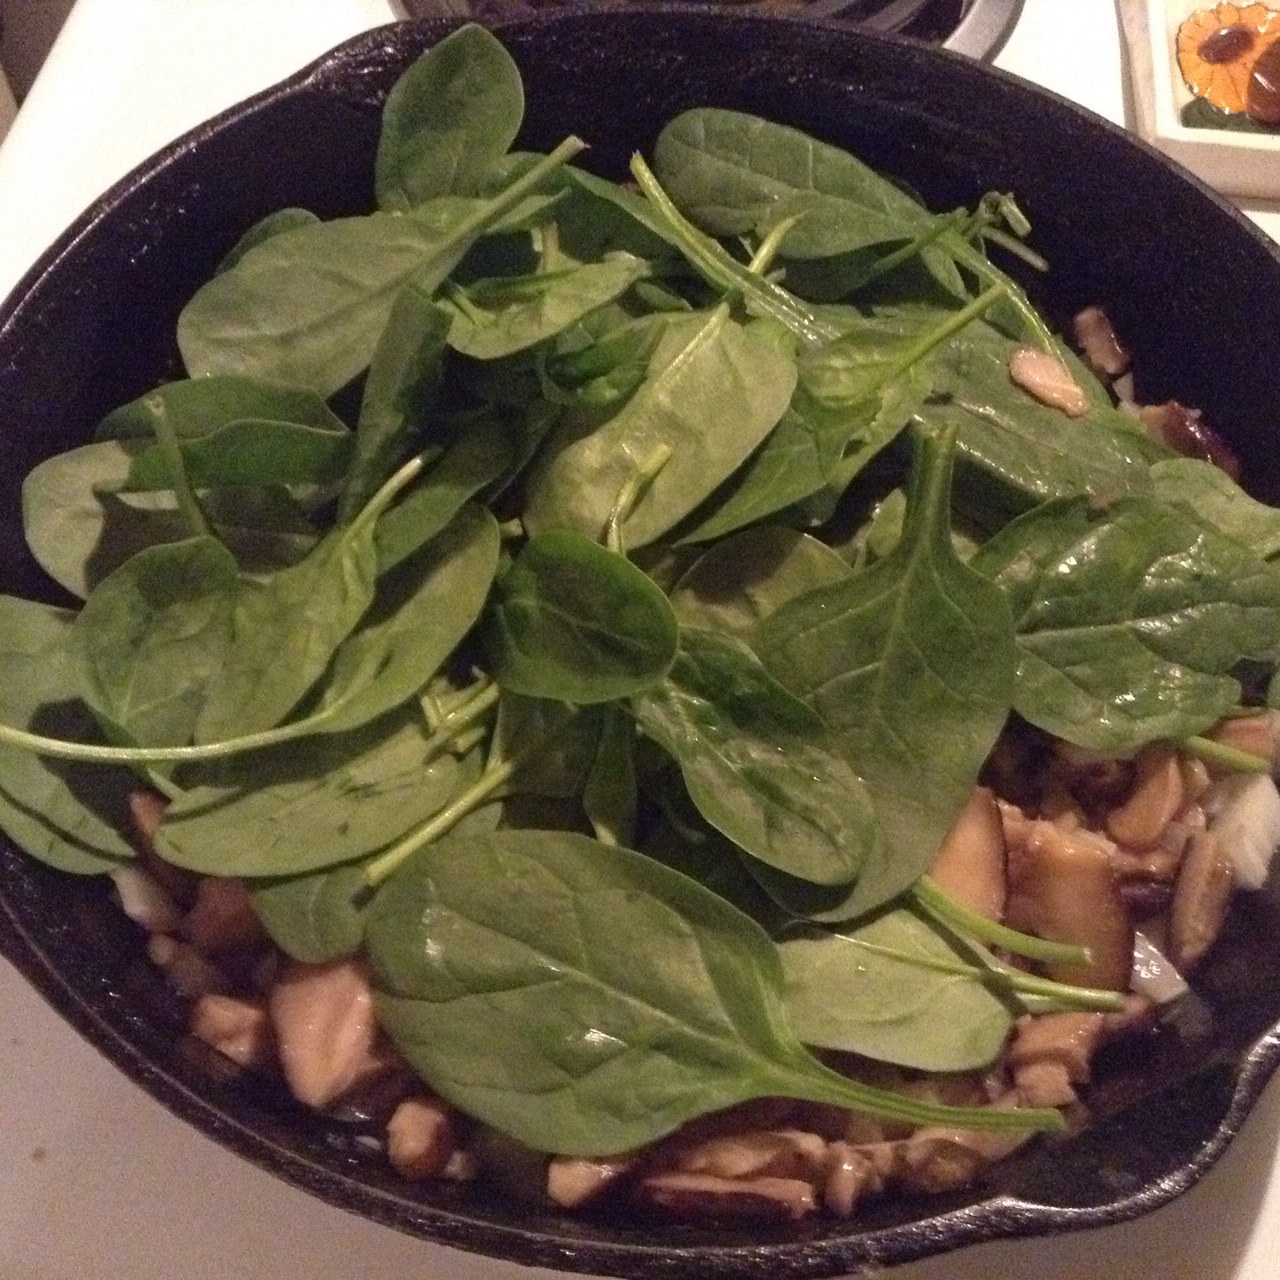 A lot of spinach cooks down quickly to a small amount.